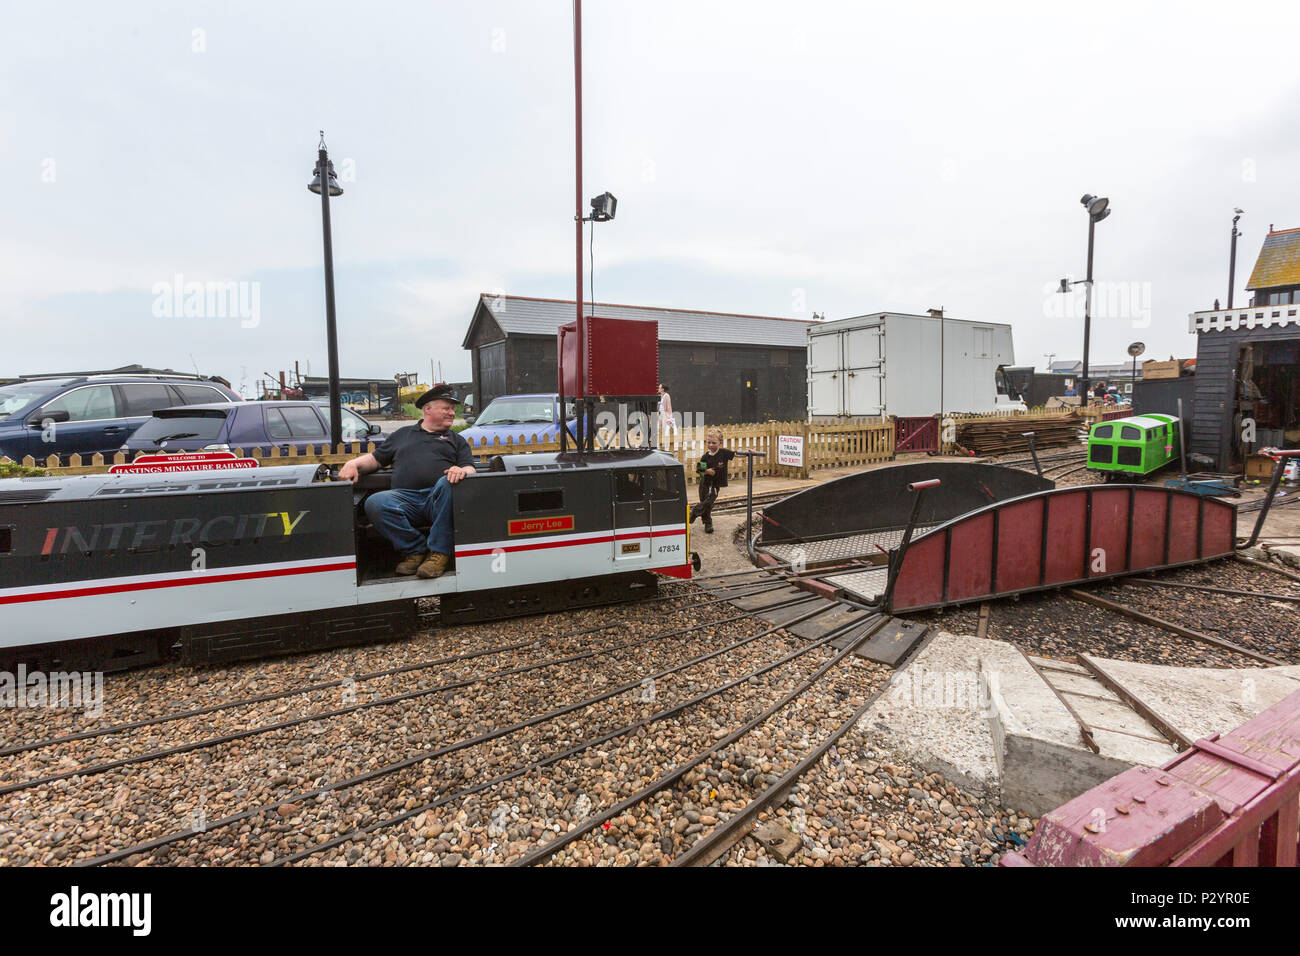 InterCity Locomotive, Hastings Miniature InterCity Railway. Hastings, East Sussex, England , UK - Stock Image